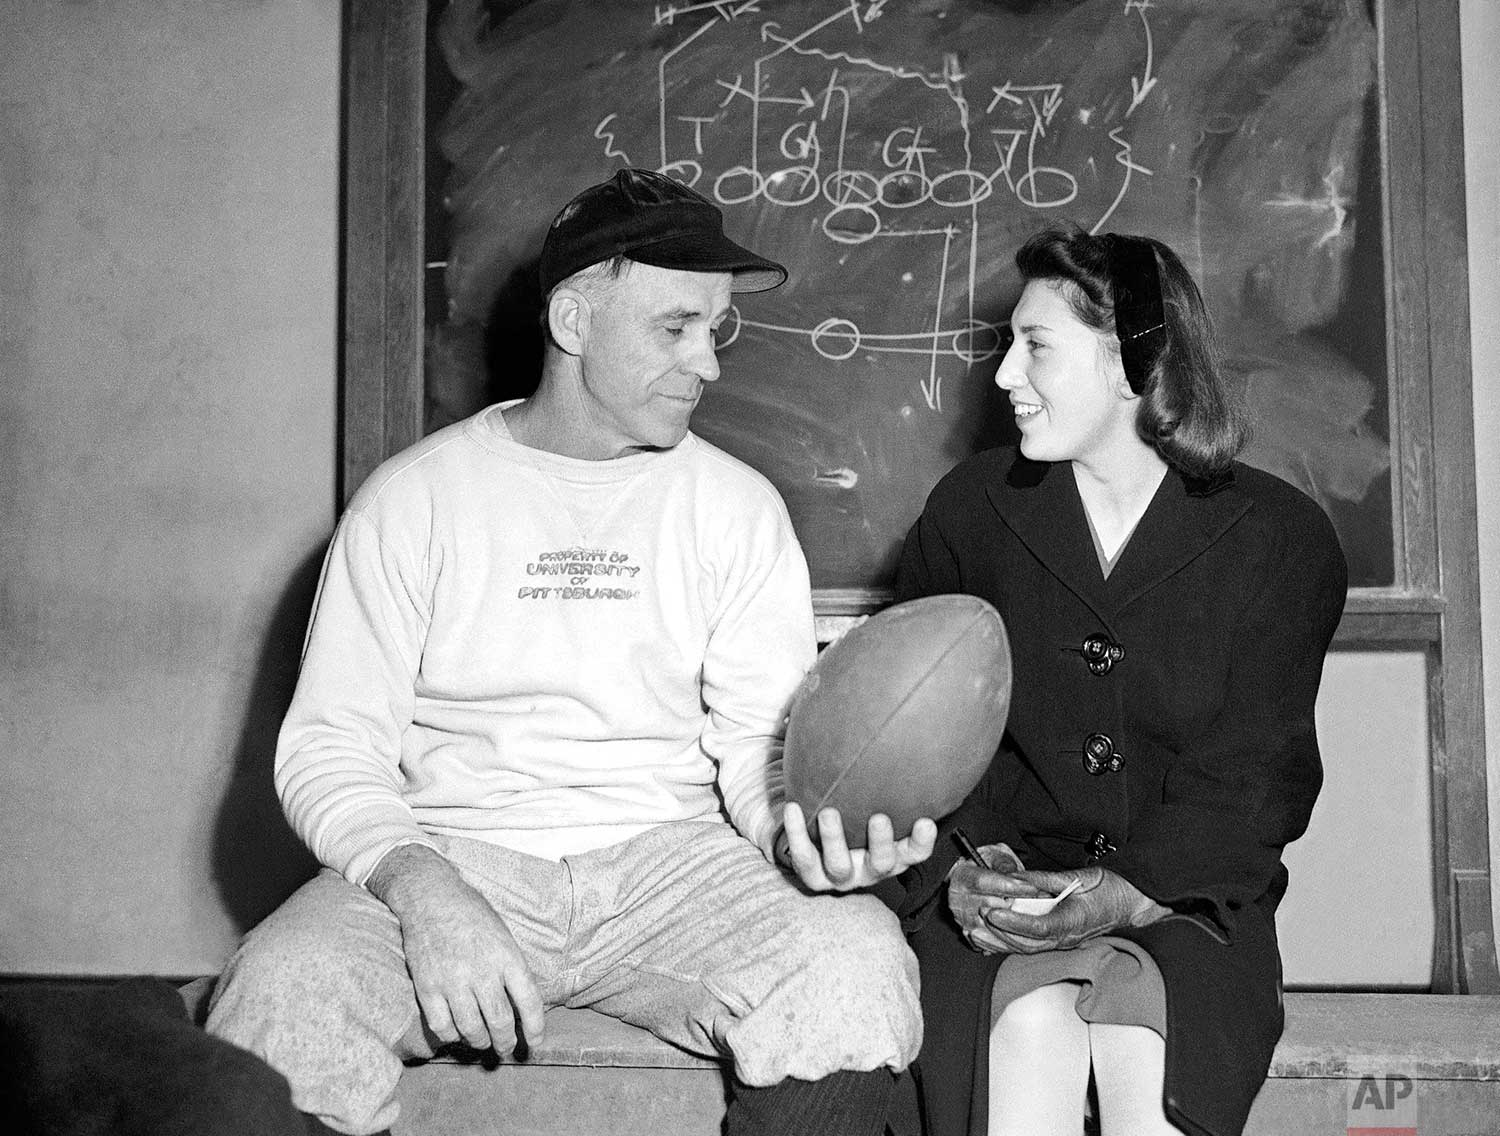 Elaine Kahn, Pittsburgh AP staffer, talks with Clark Shaughnessy, University of Pittsburgh gridiron coach, about 1946 prospects in Pittsburgh, January 1946. (AP Photo/Walter Stein)